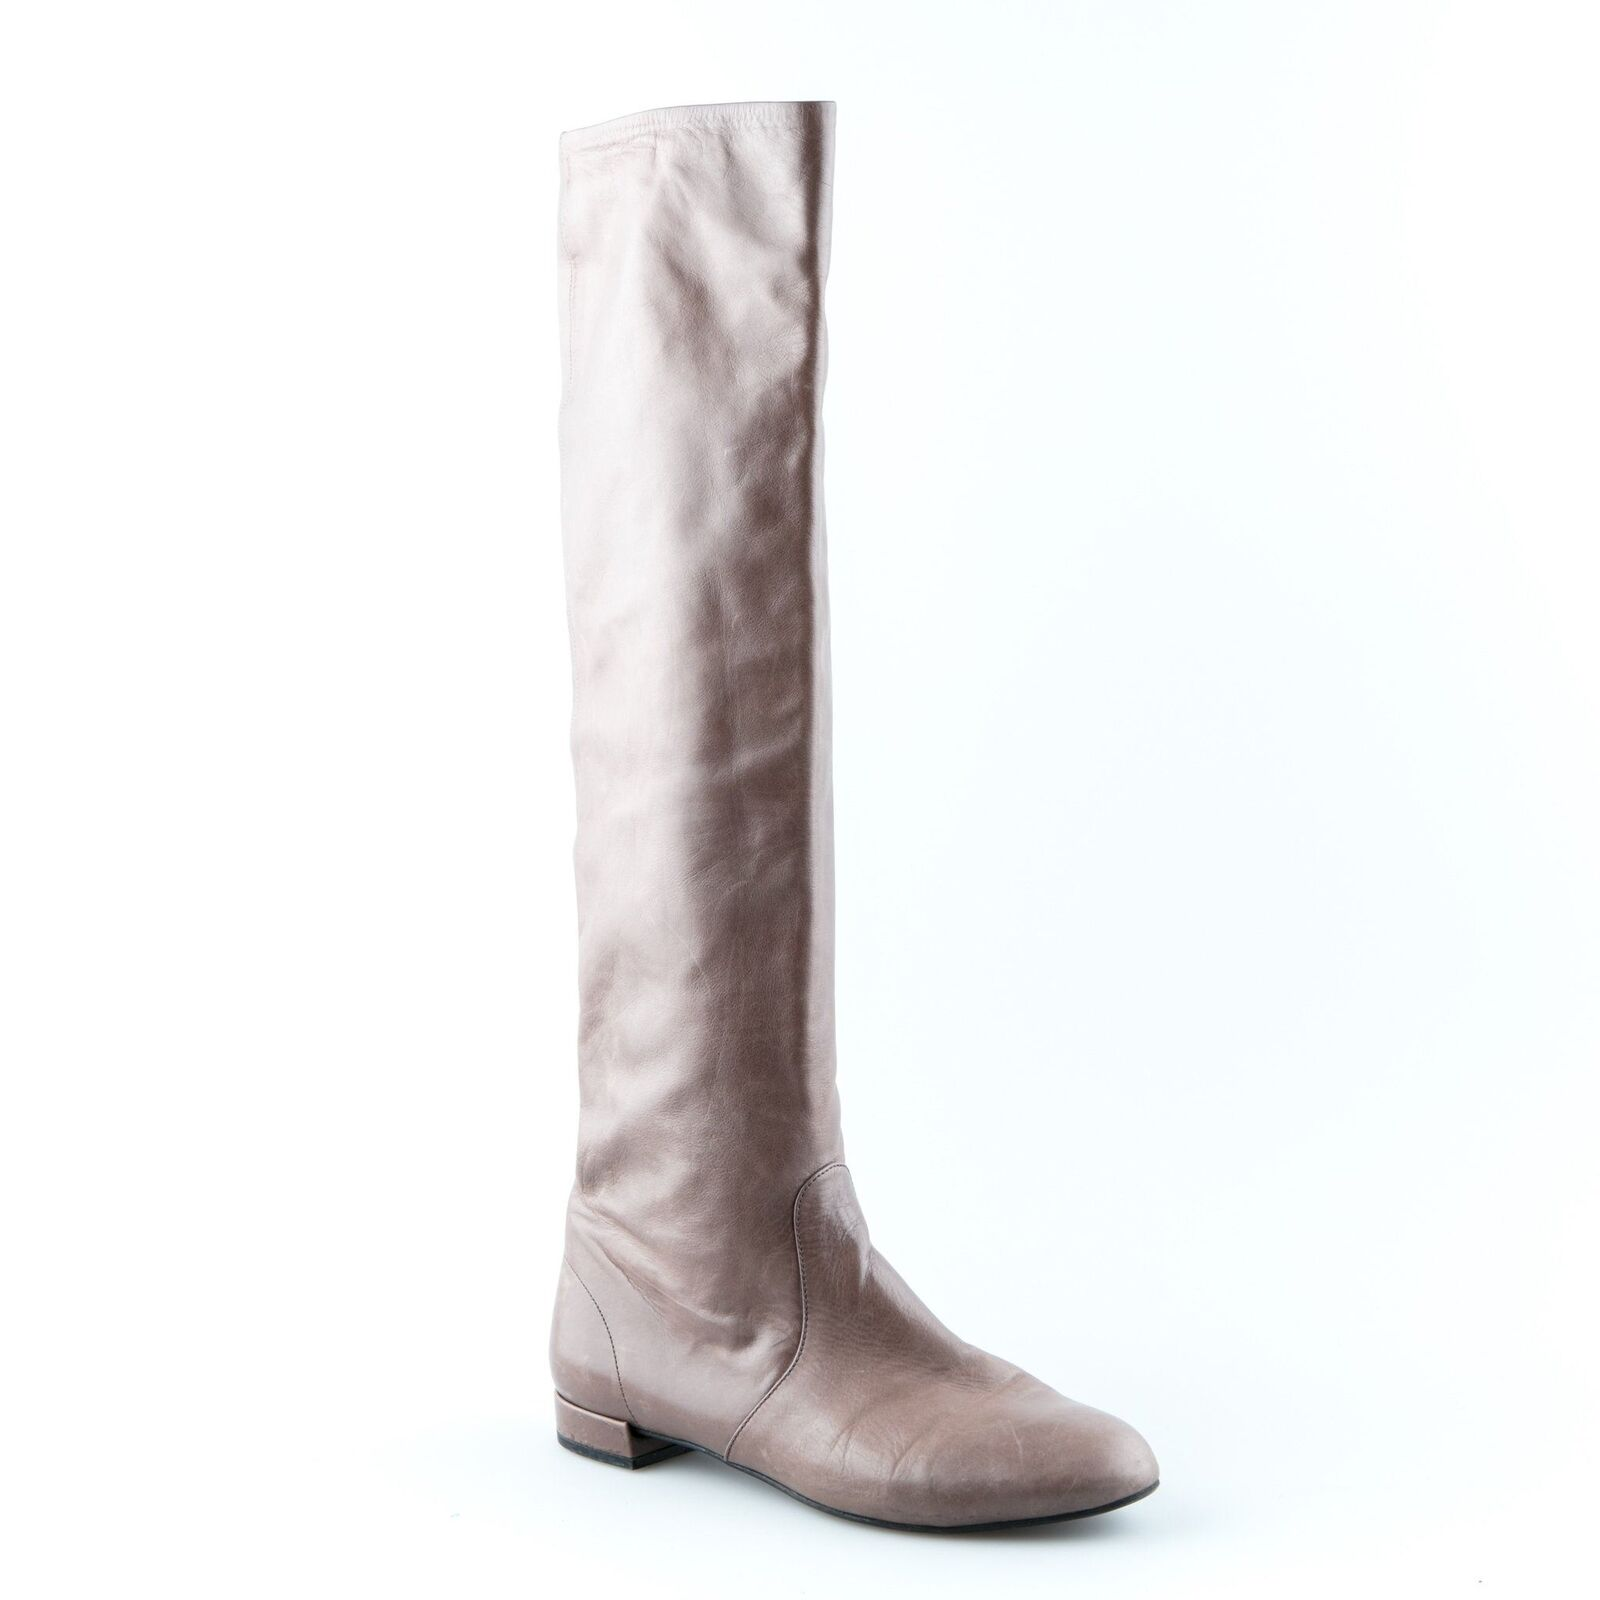 Prada Brown Leather Knee High Boots - - - Size 38 6fb1fa